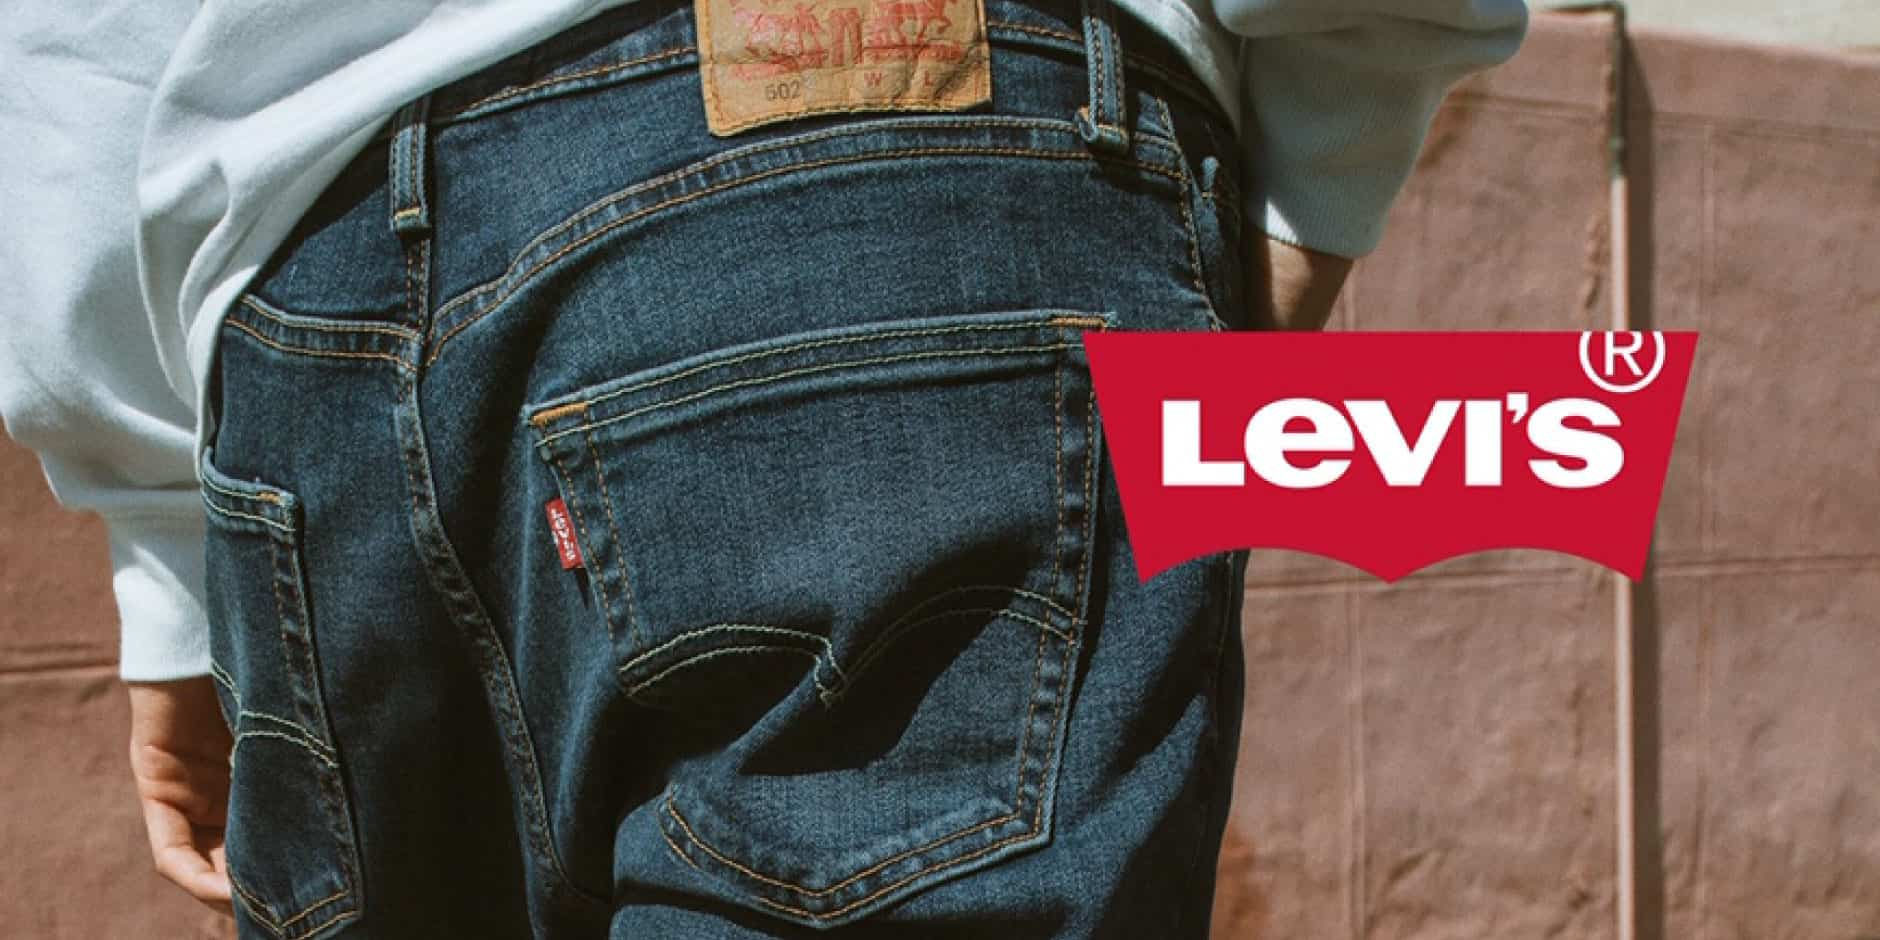 Levi's Jeans | Best Jeans Brands in India